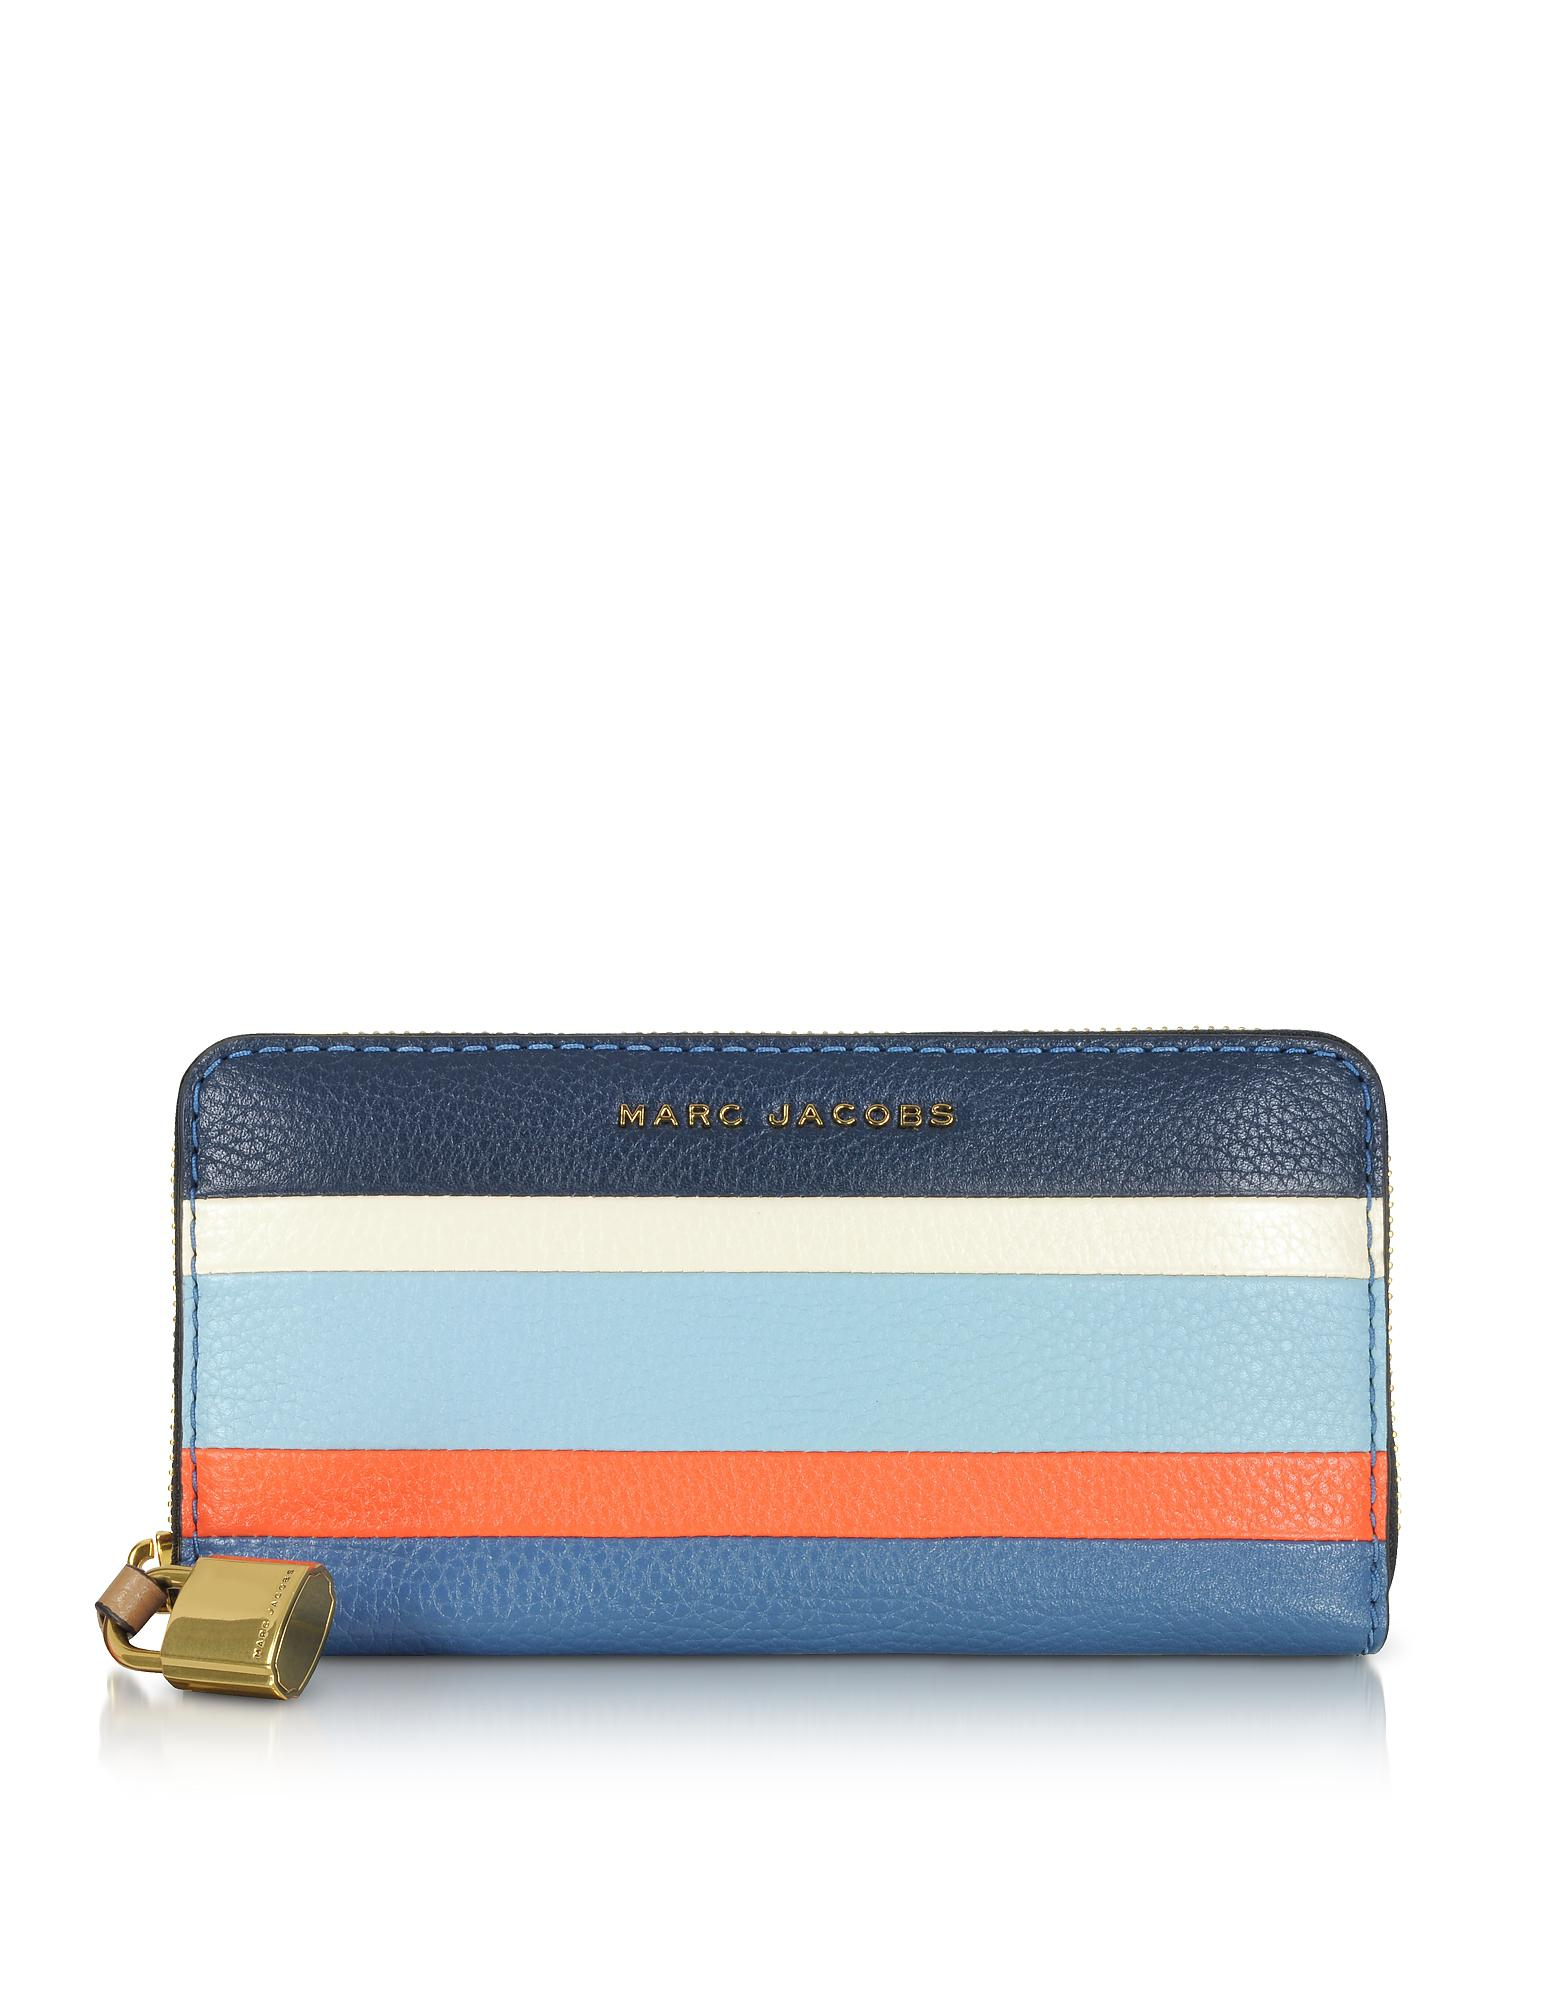 Sale 100% Original Marc Jacobs The Grind Colorblocked Leather Continental Wallet Exclusive Cheap Price KAhqLRzlj